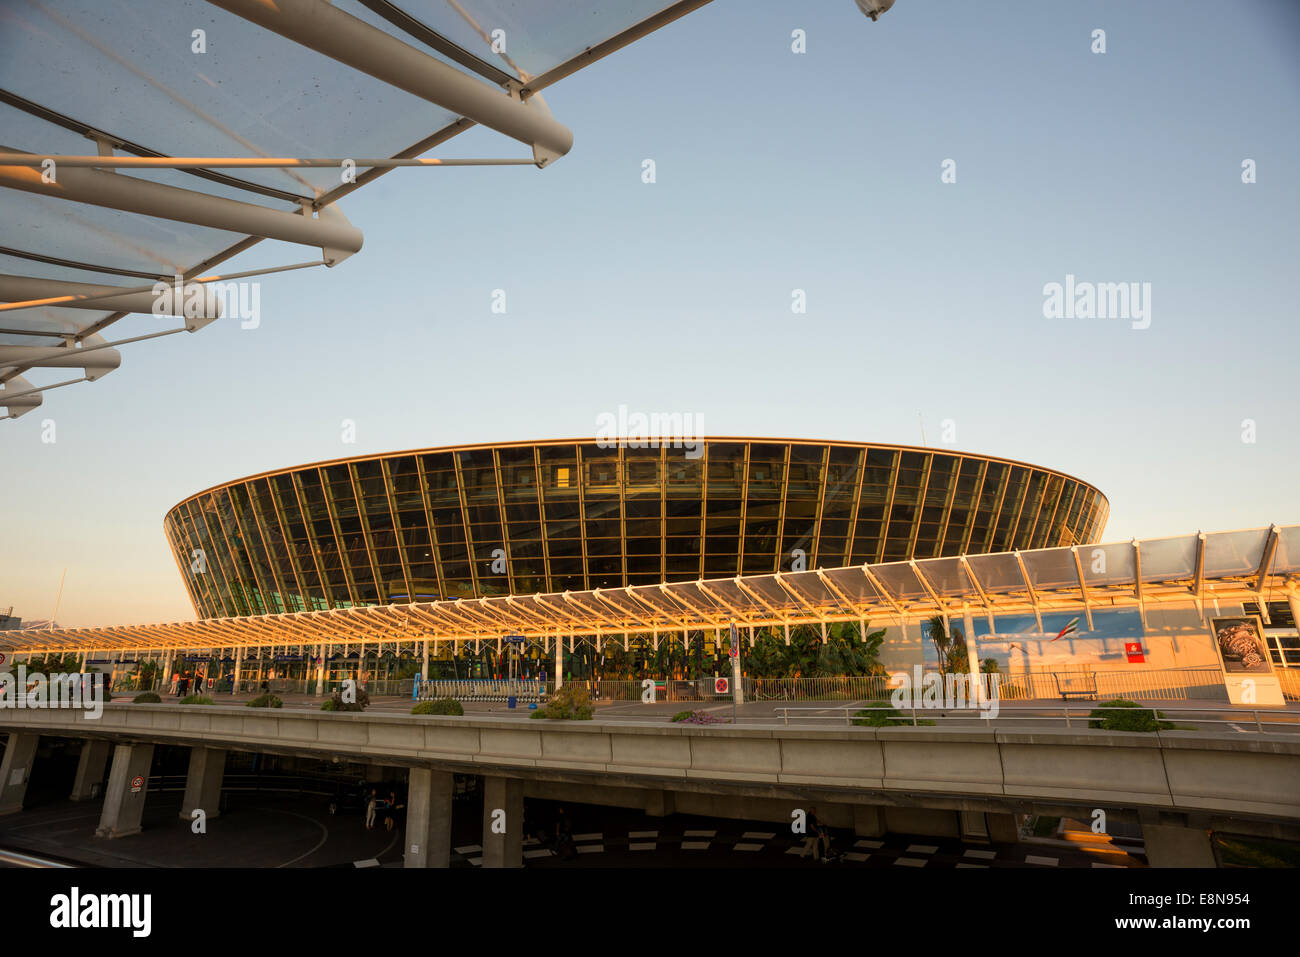 The main terminal building at Nice Airport in the south of France. Stock Photo